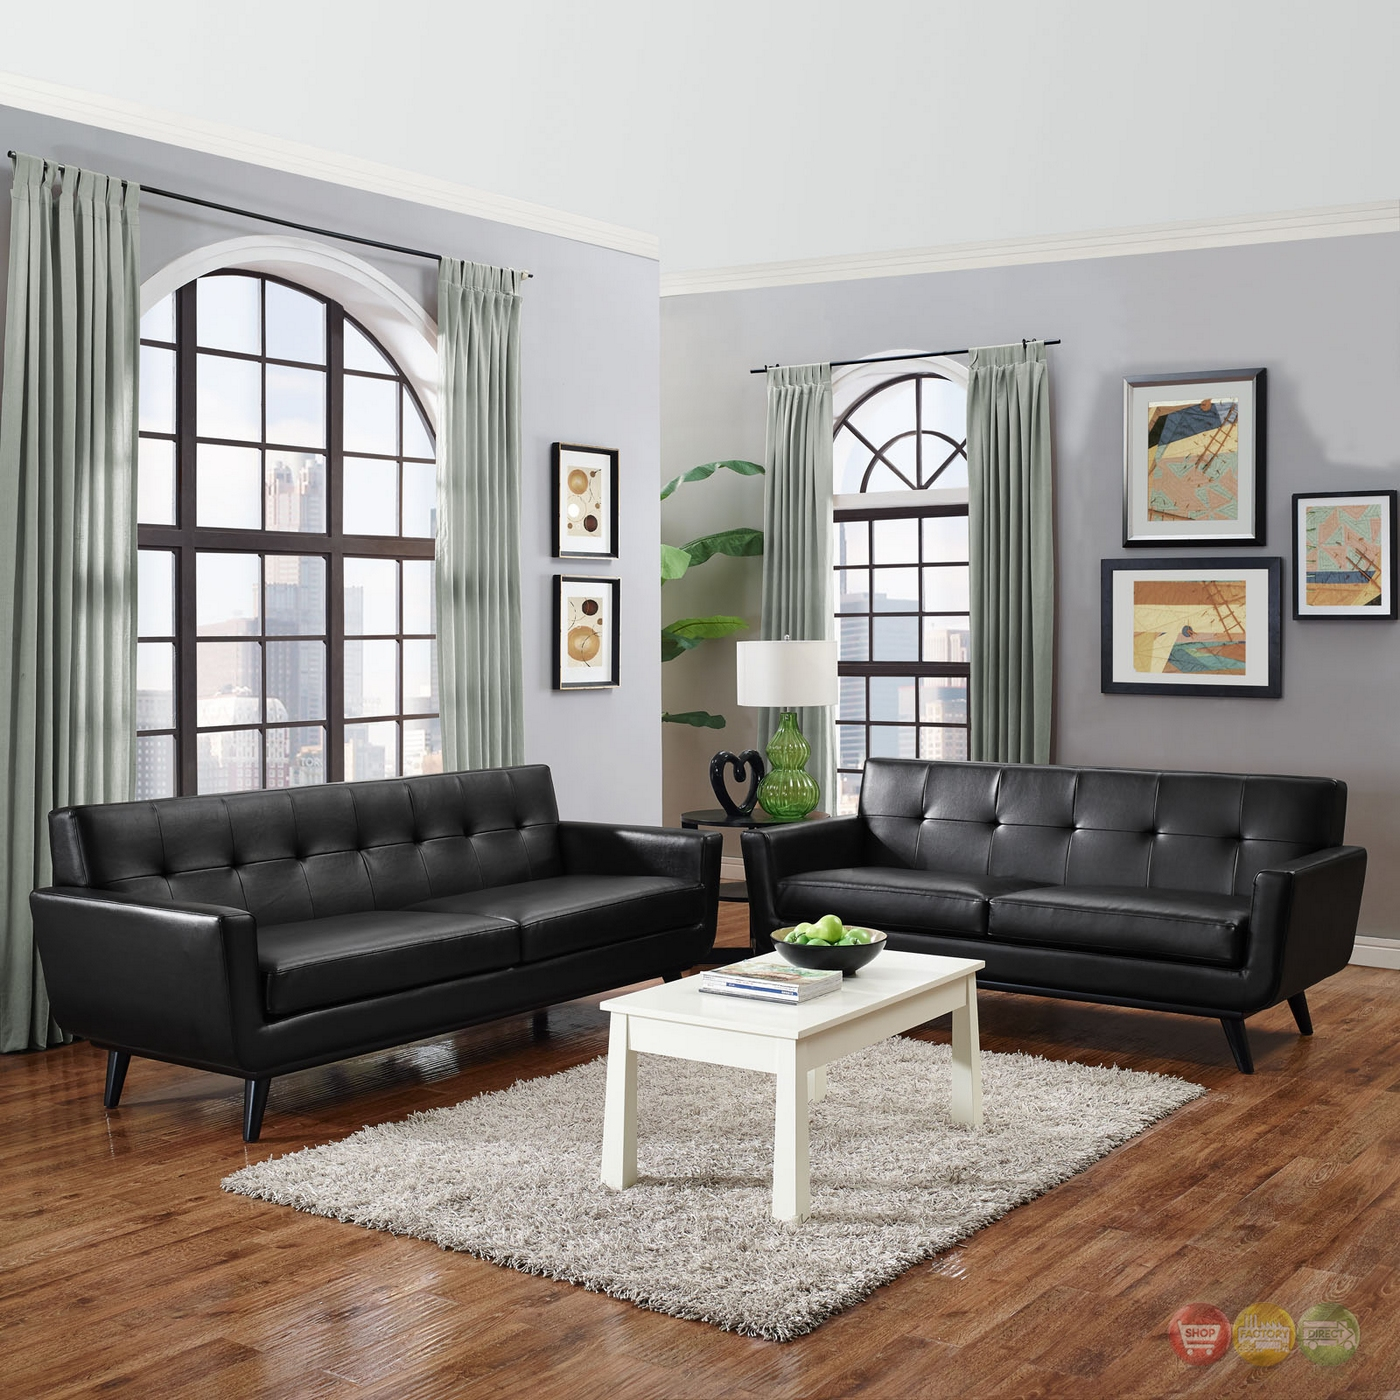 engage contemporary 2pc button tufted leather living room. Black Bedroom Furniture Sets. Home Design Ideas